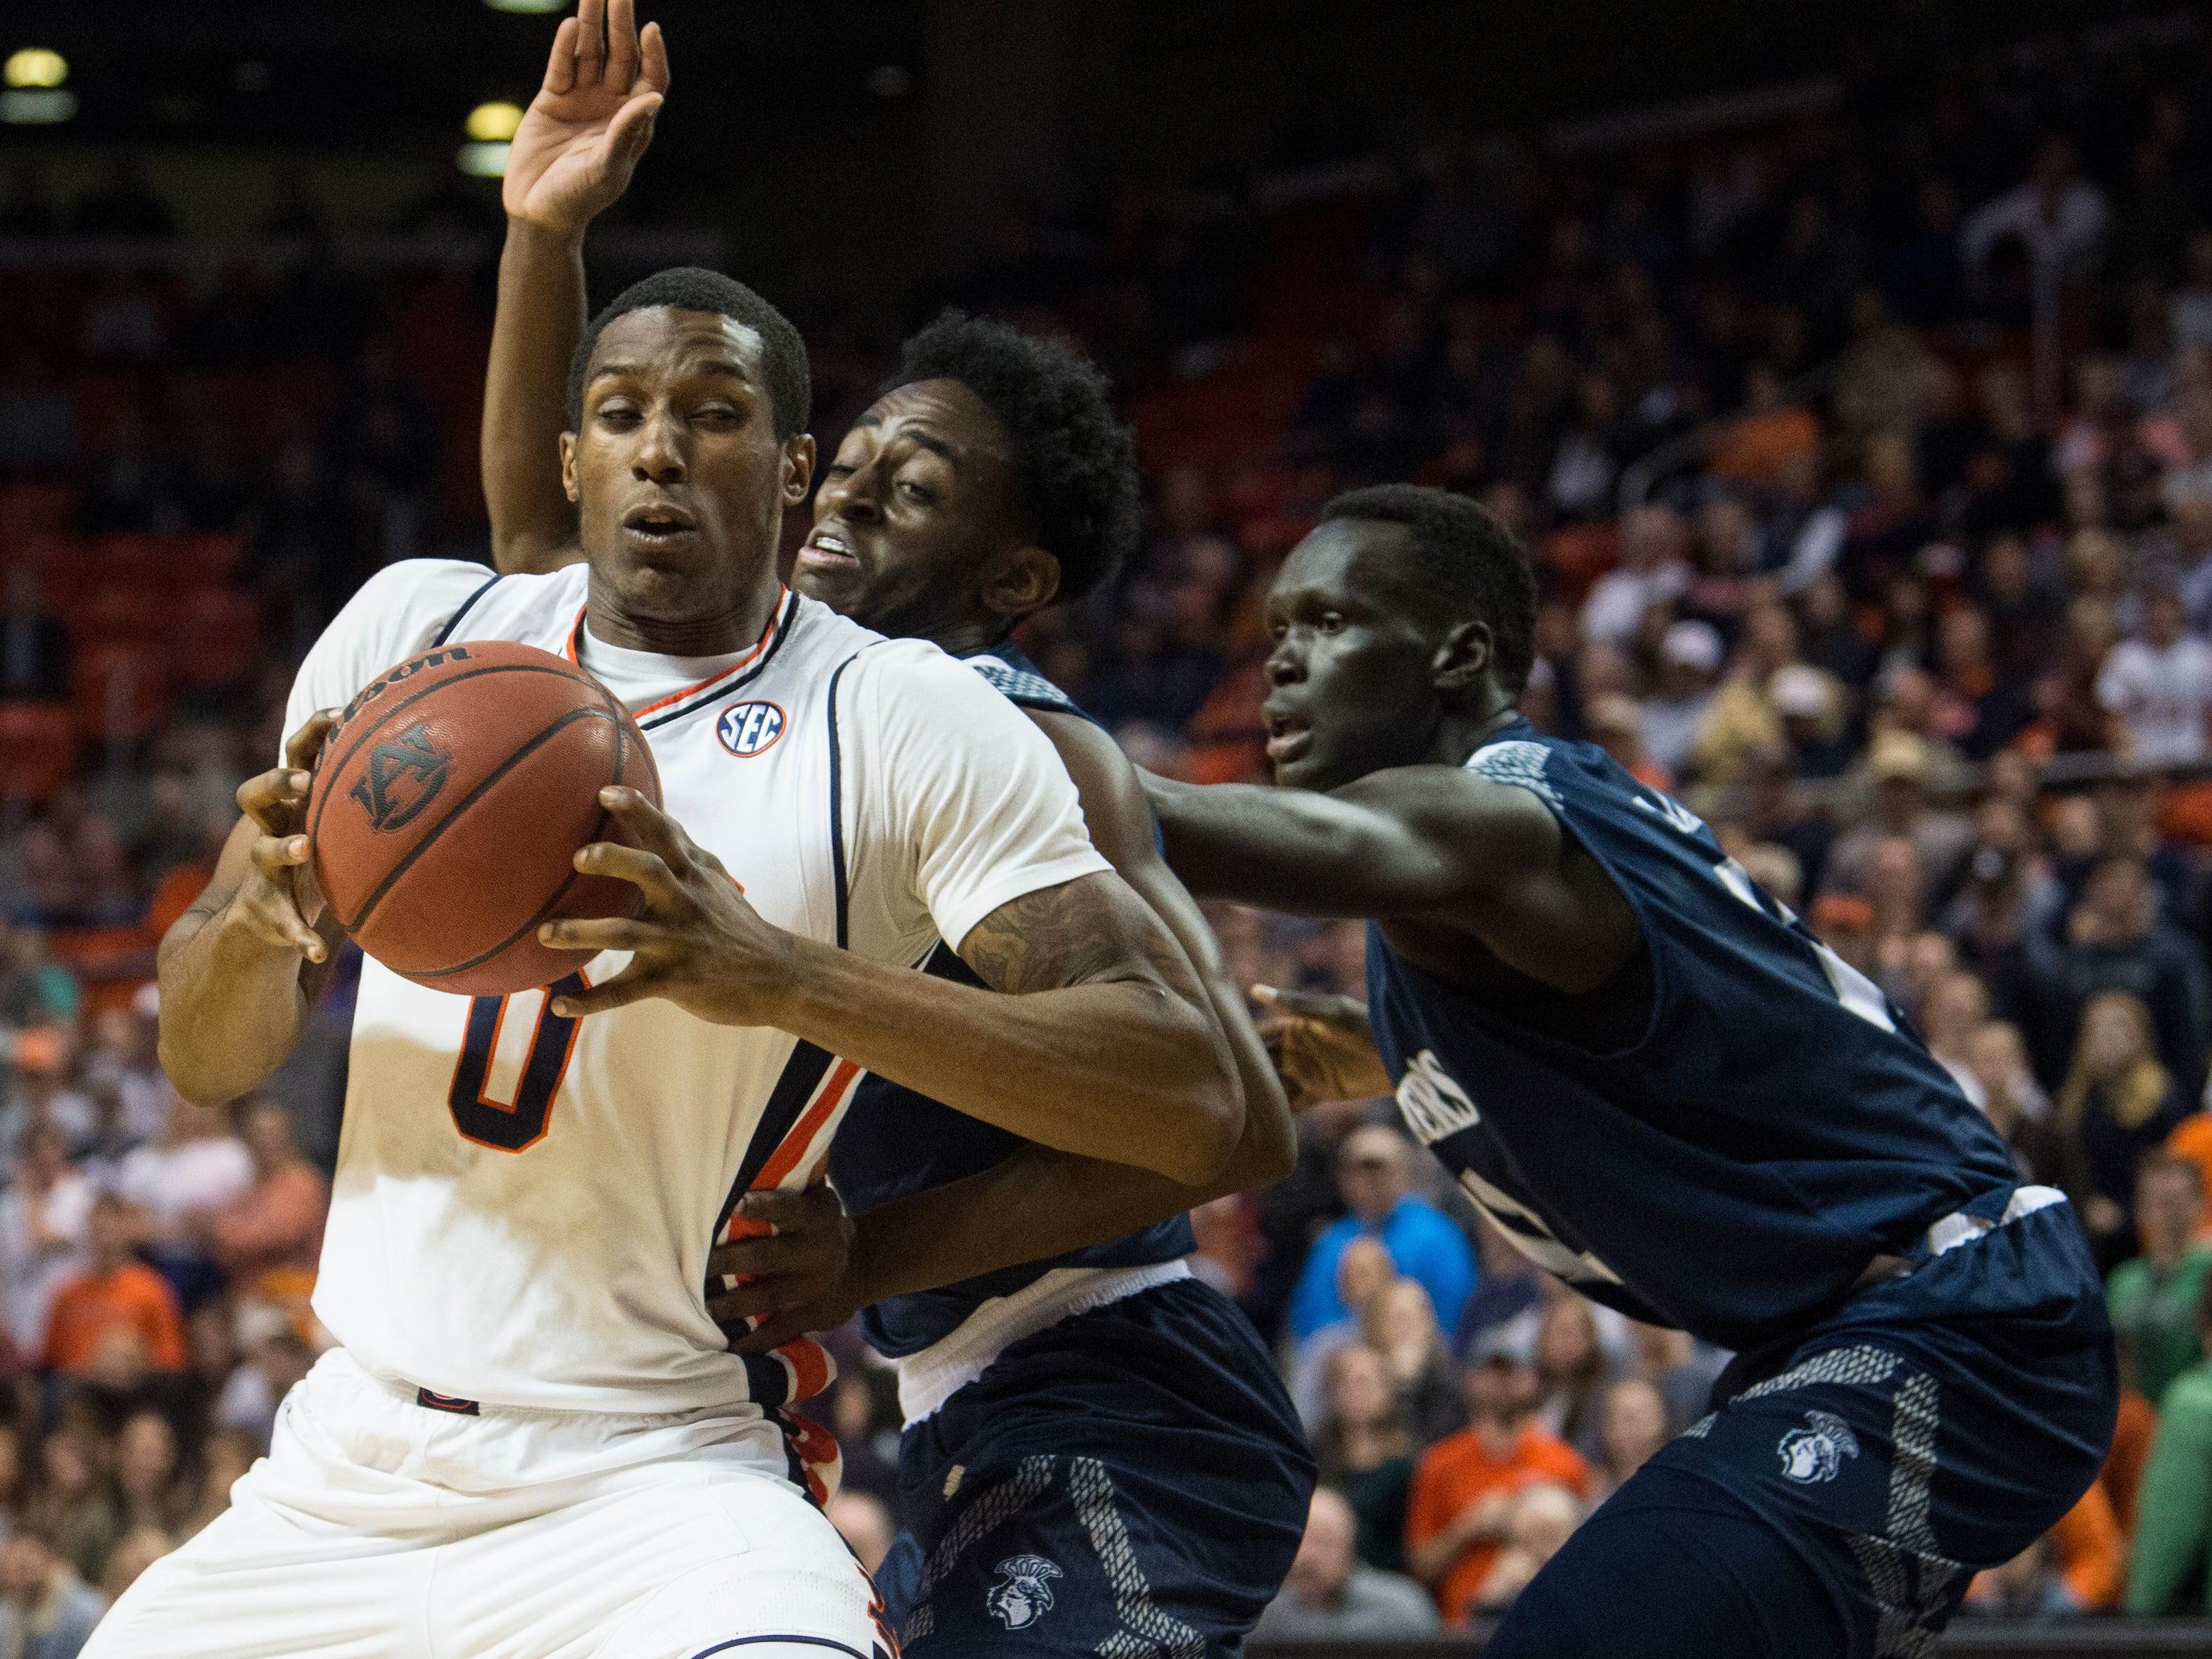 Auburn forward Horace Spencer (0) makes a move to the basket against Saint Peter's at Auburn Arena in Auburn, Ala., on Wednesday, Nov. 28, 2018. Auburn leads Saint Peter's 51-23 at halftime.